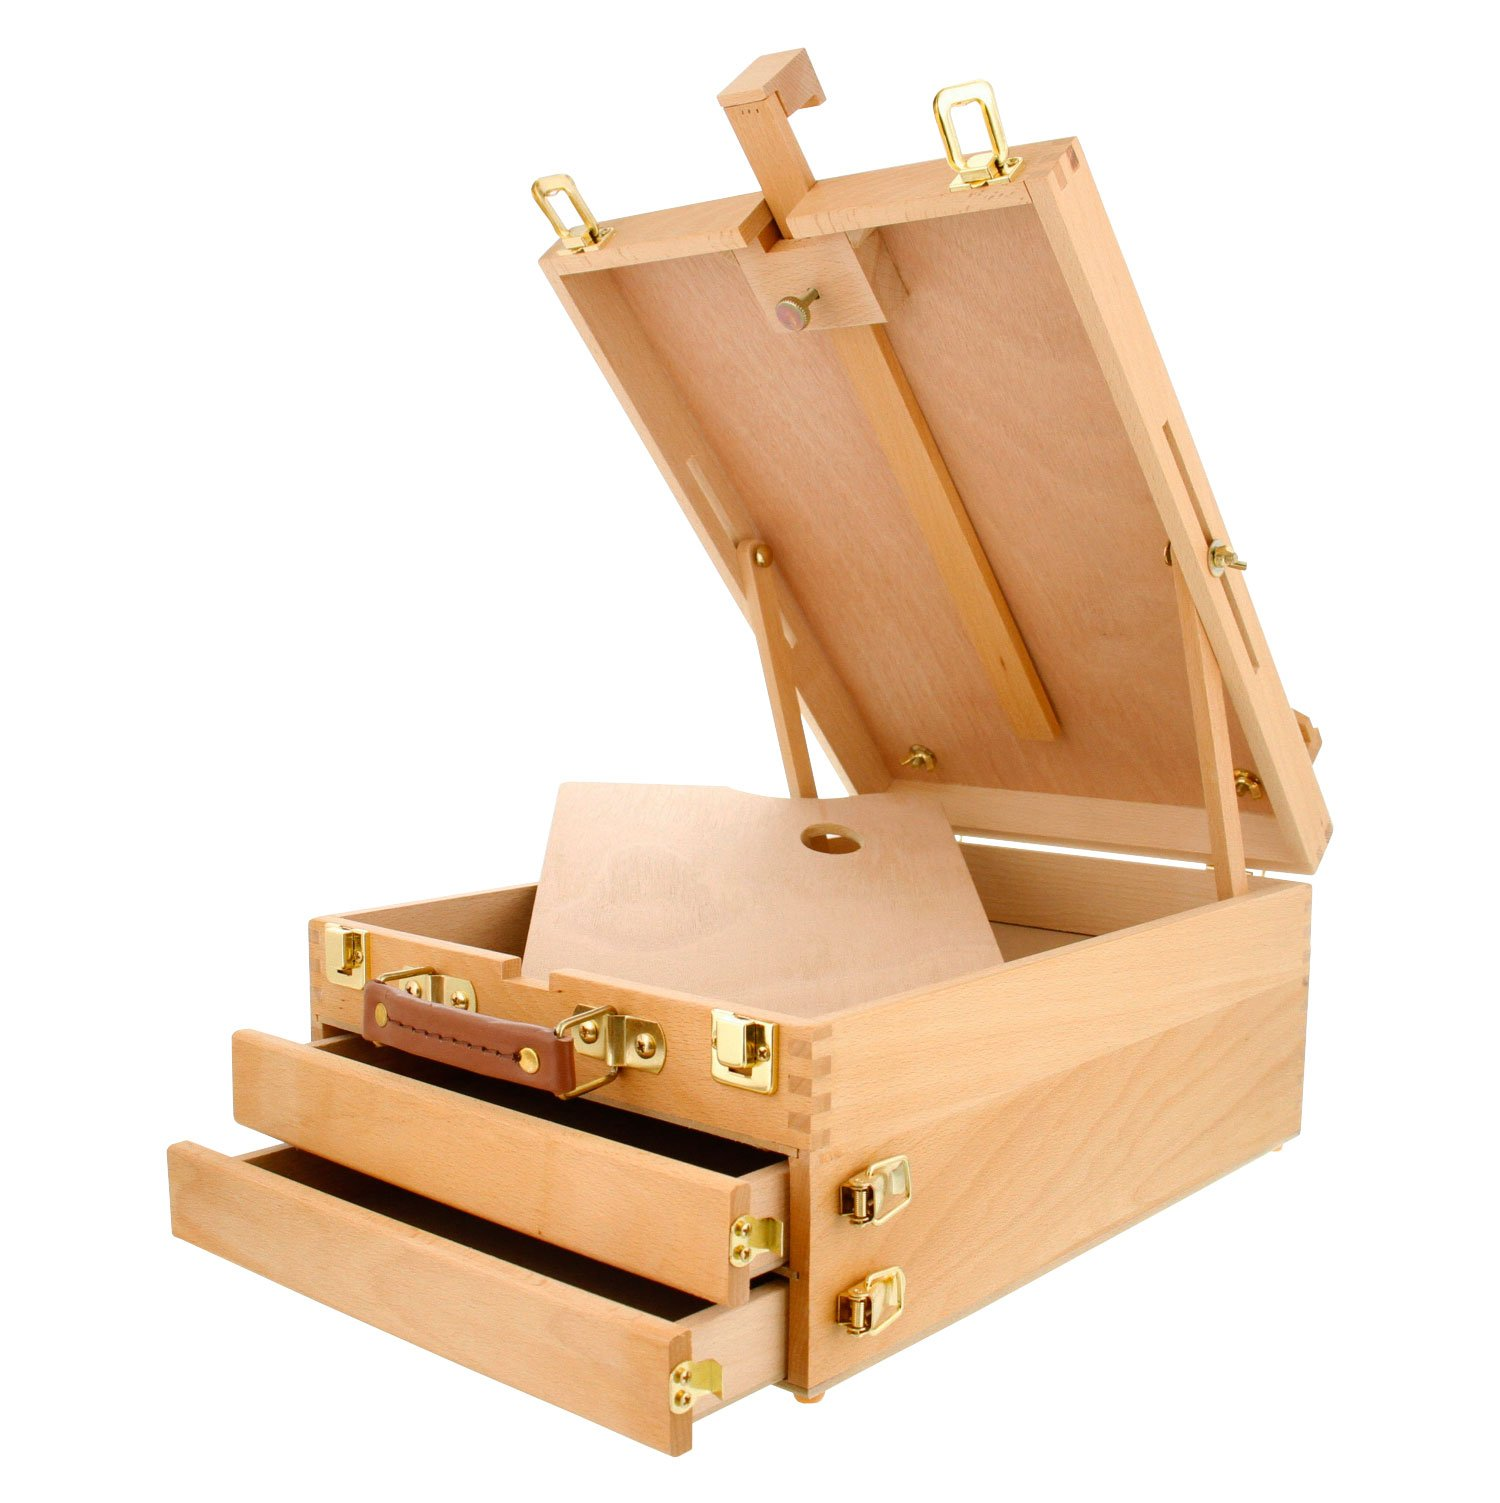 US Art Supply GRAND CAYMAN Extra Large 2-Drawer Wooden Sketchbox Easel by US Art Supply